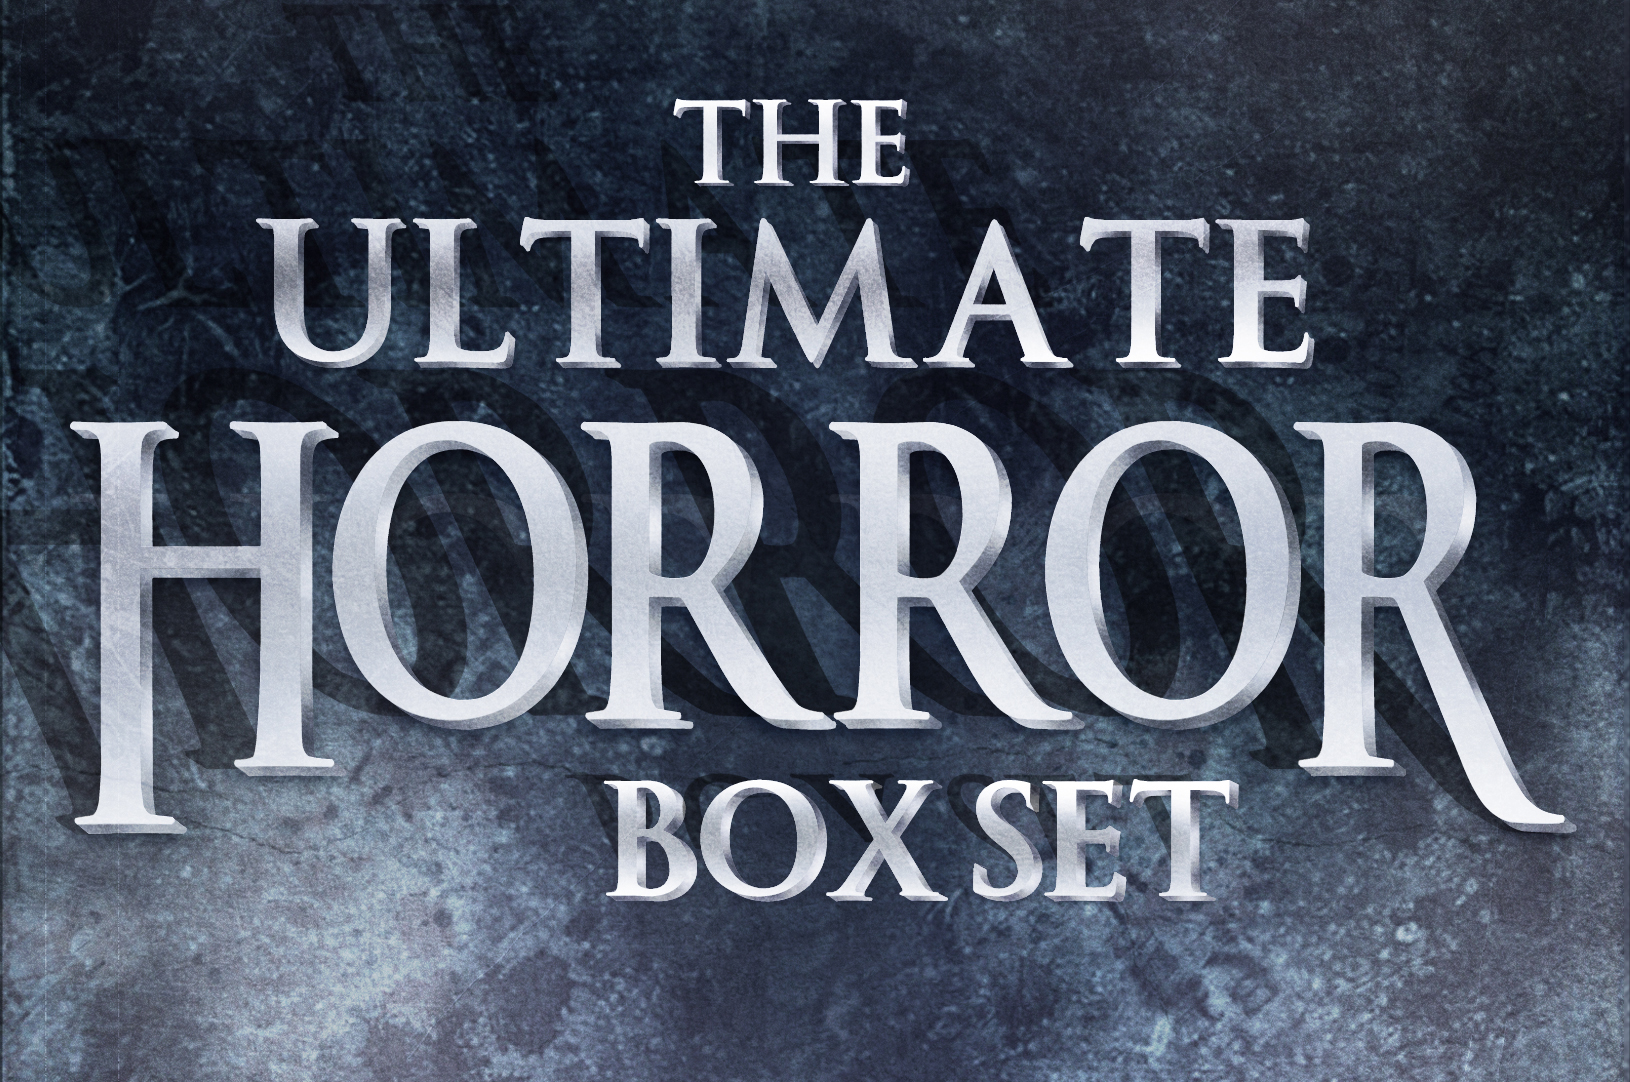 Universal Horror Title Treatment